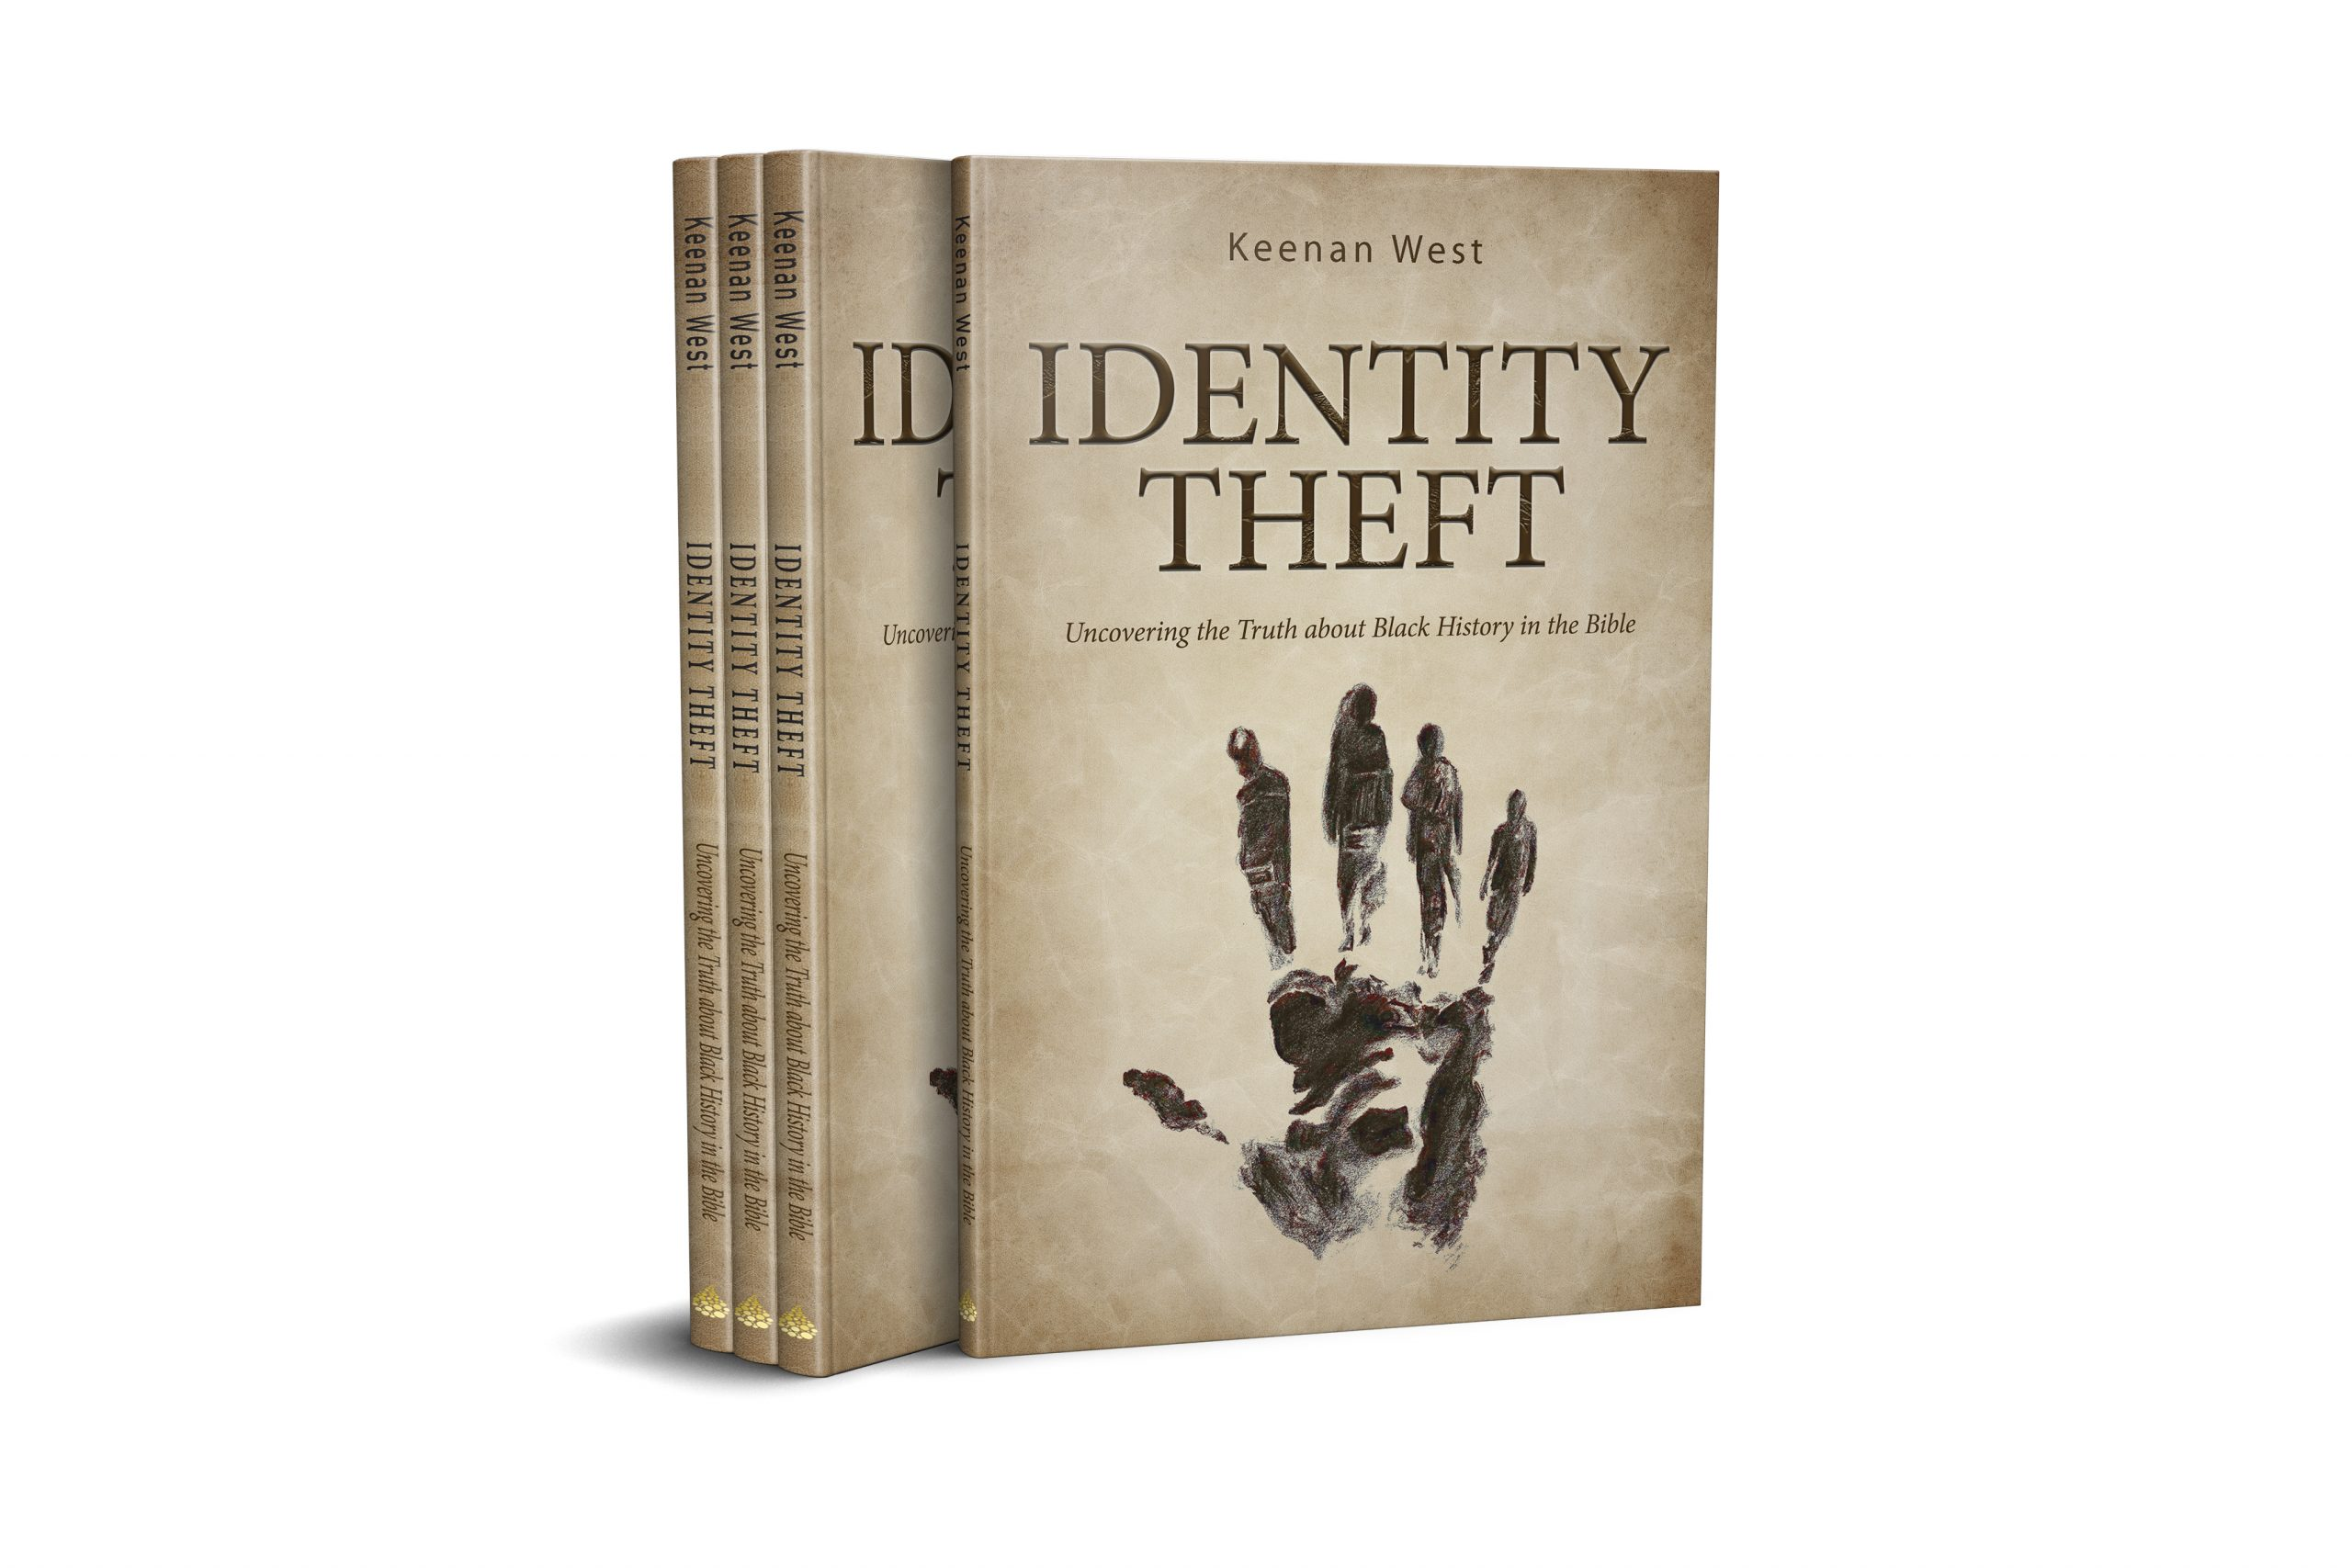 Identity Theft by Keenan West